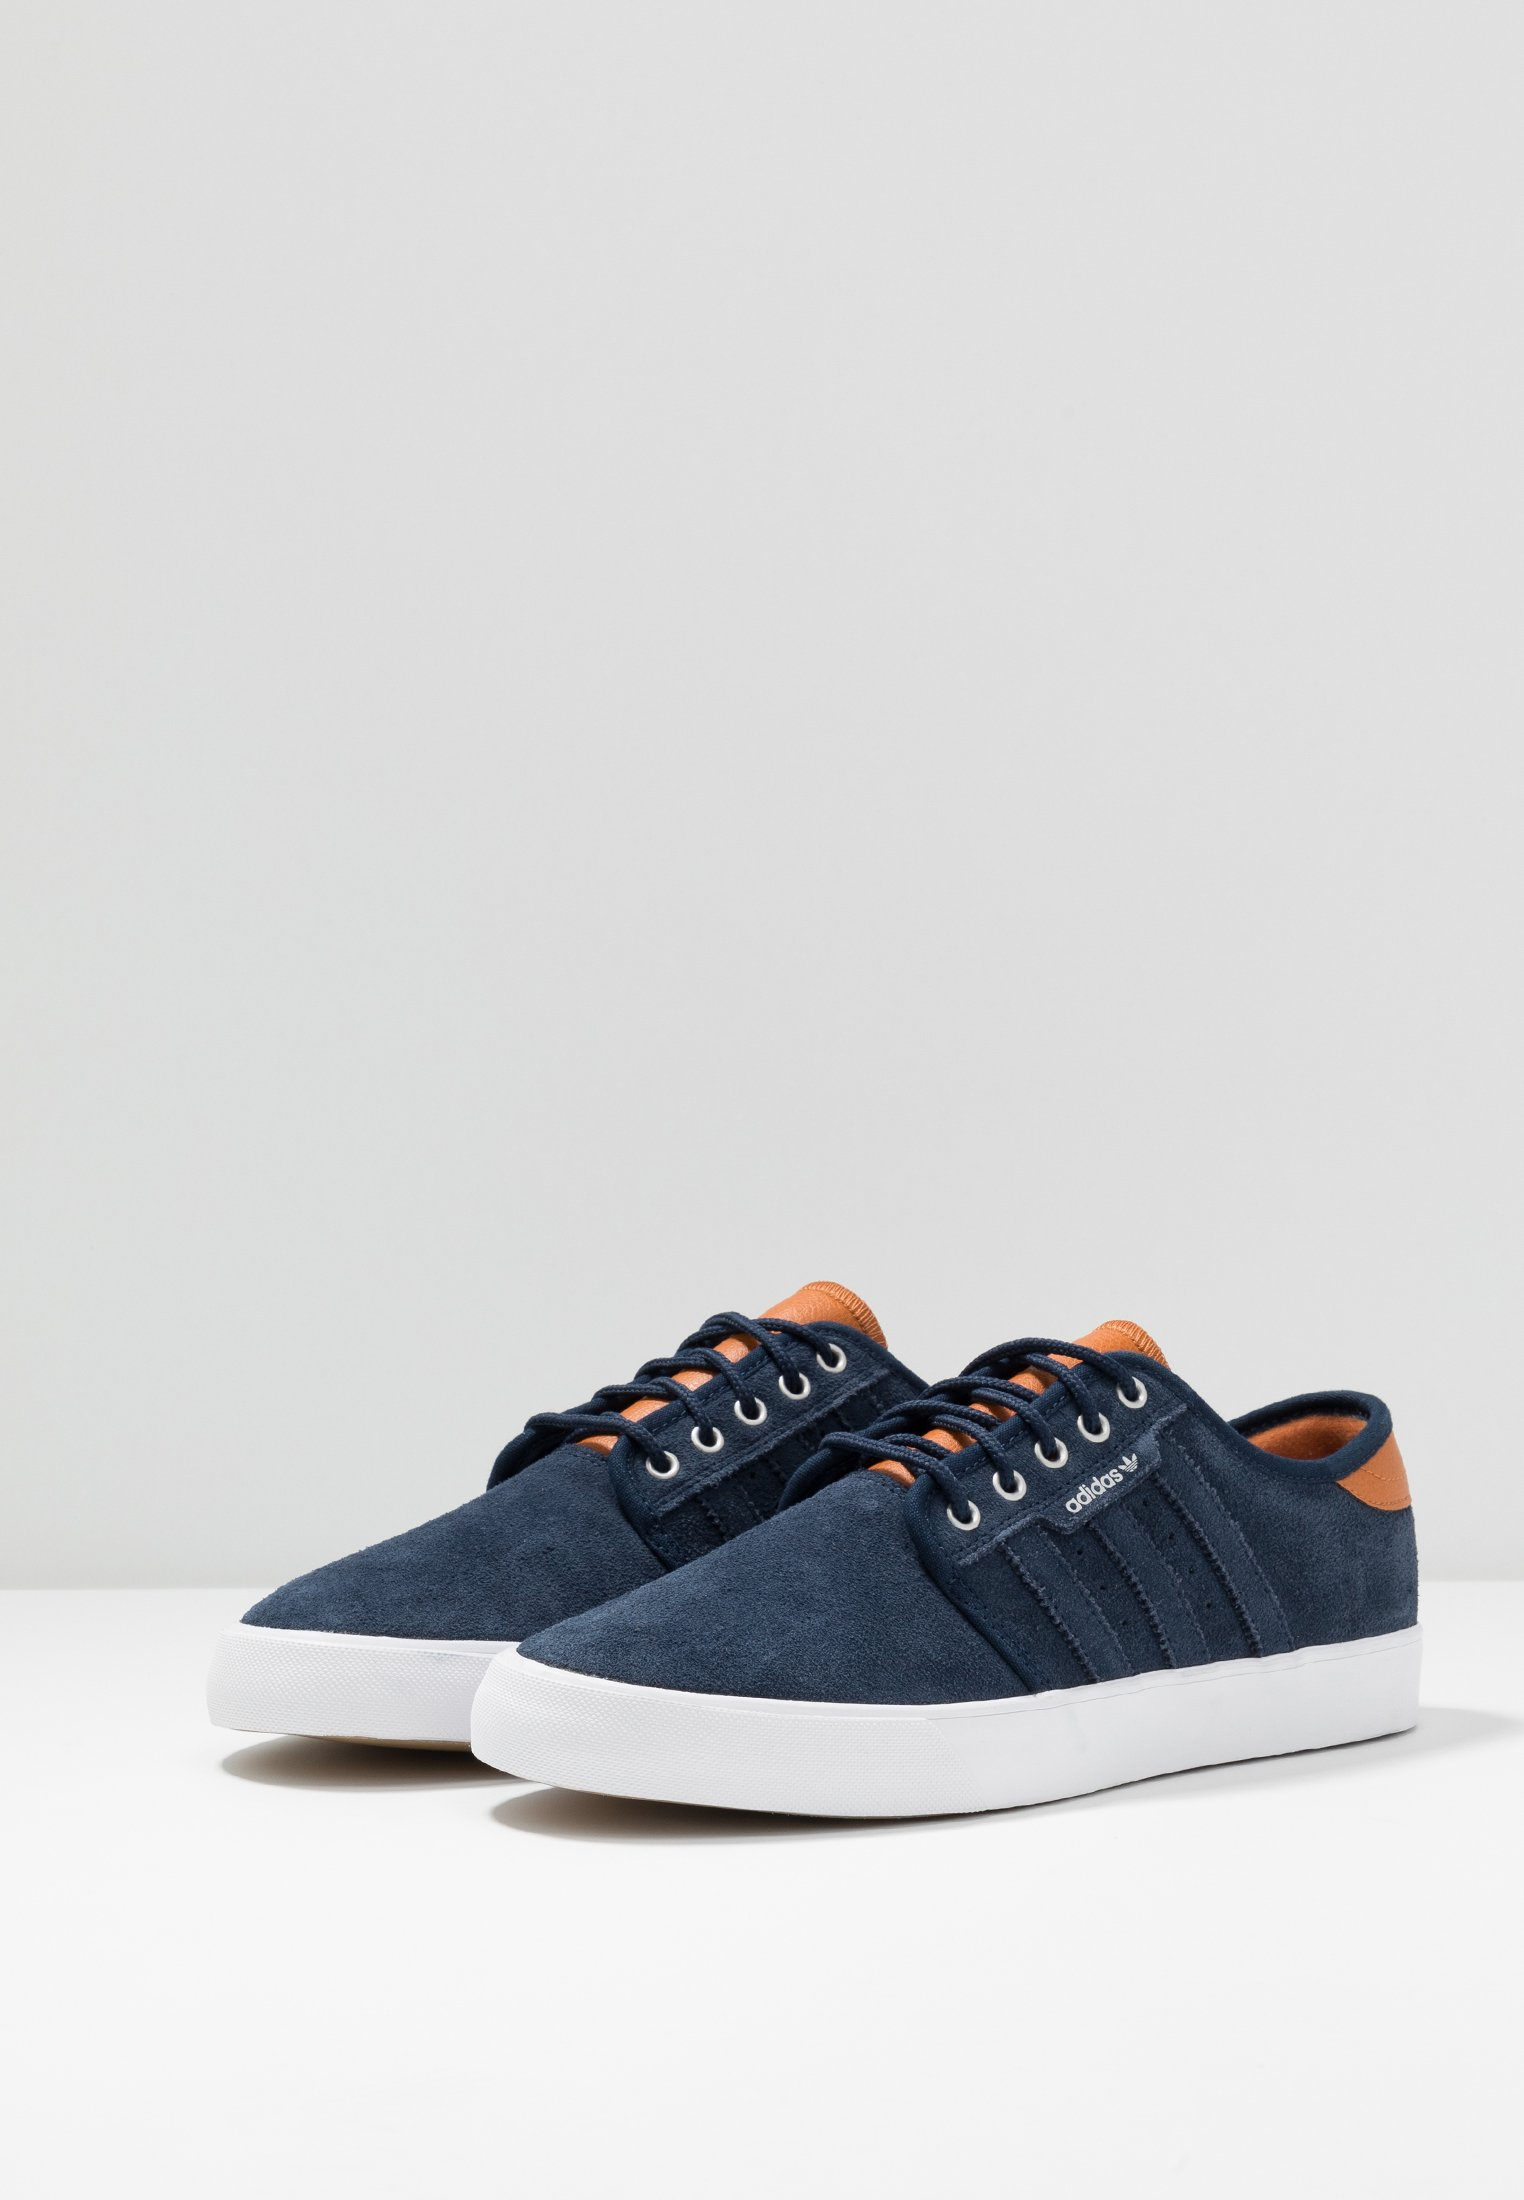 Coppper tech Collegiate Navy Basse Adidas Originals footwear SeeleySneakers White QWroxBEdeC